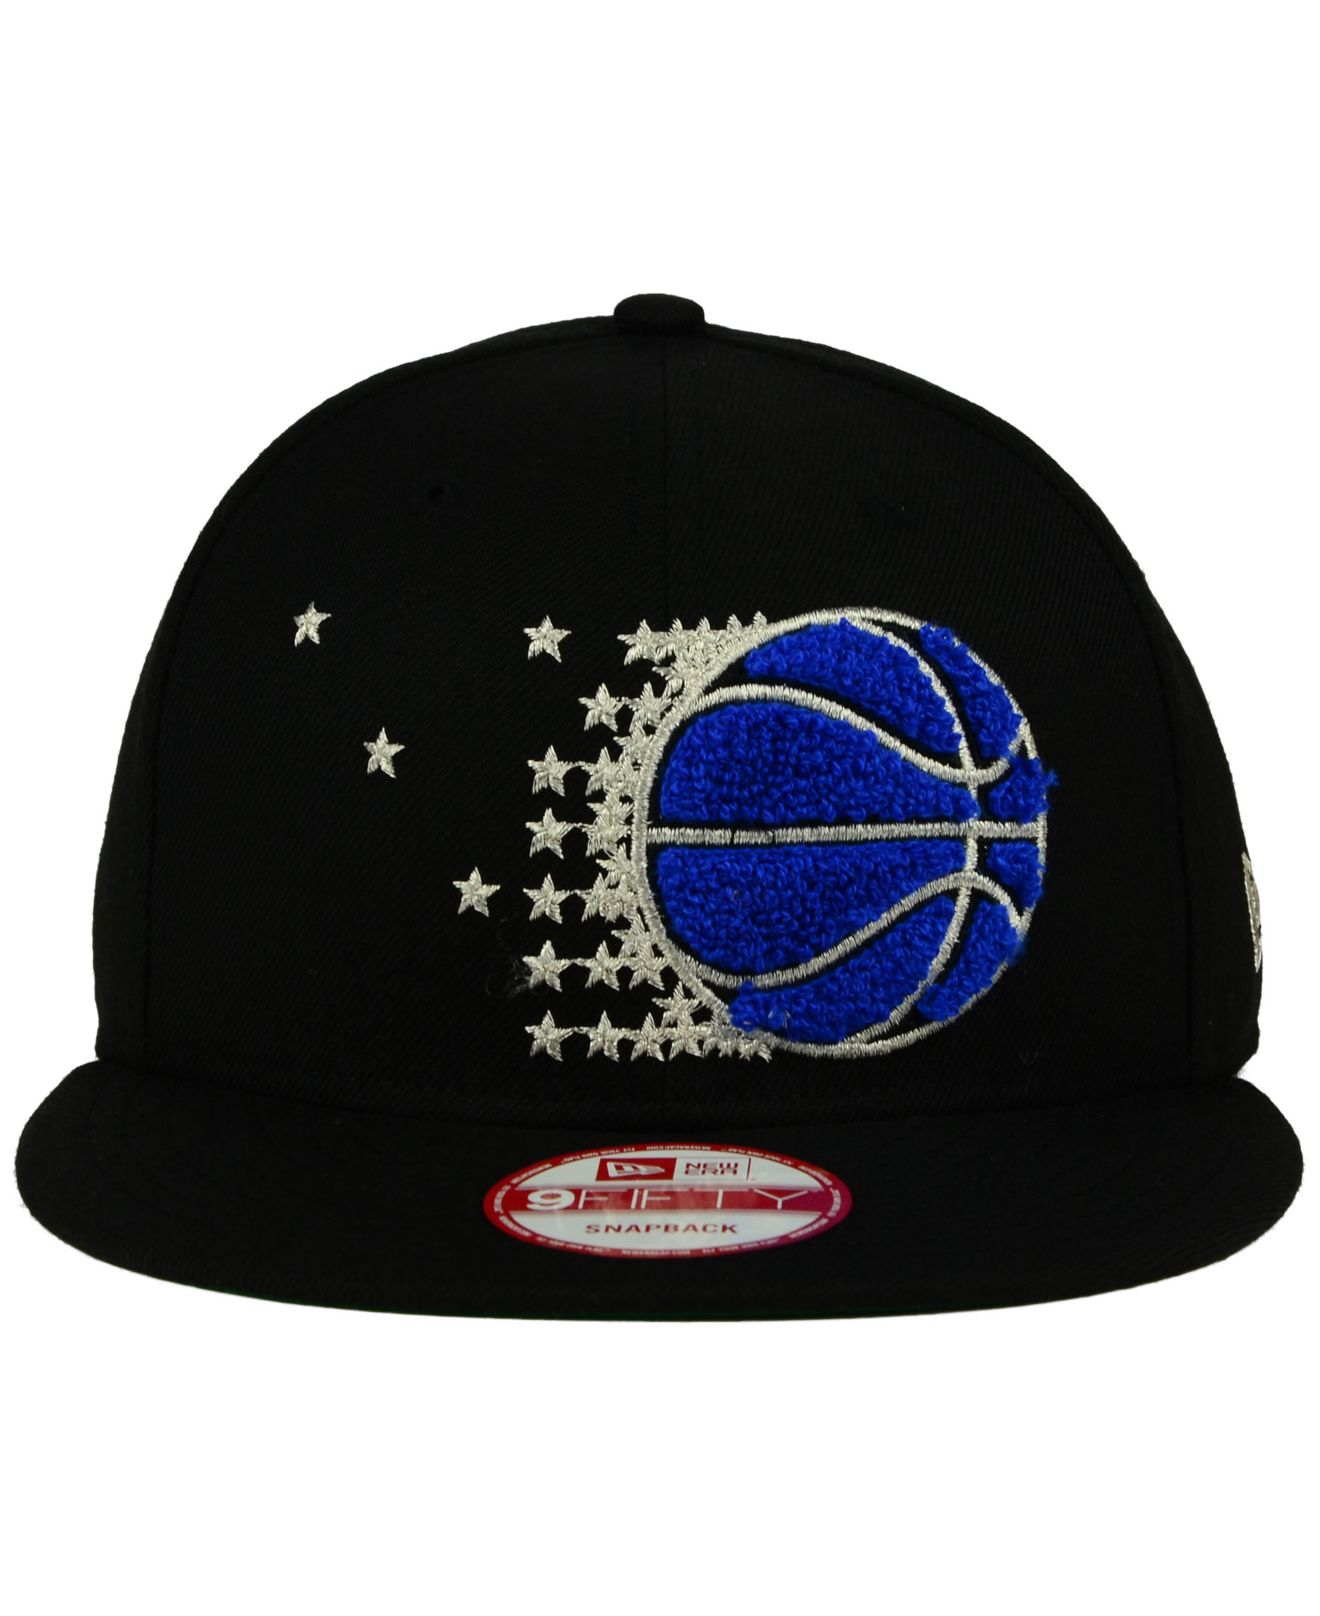 new concept 54fc2 3cb4a ... new era nba retro showtime 9fifty snapback cap 0f051 45faa  canada lyst  ktz orlando magic letter man 9fifty snapback cap in black for men 87d30  0746e